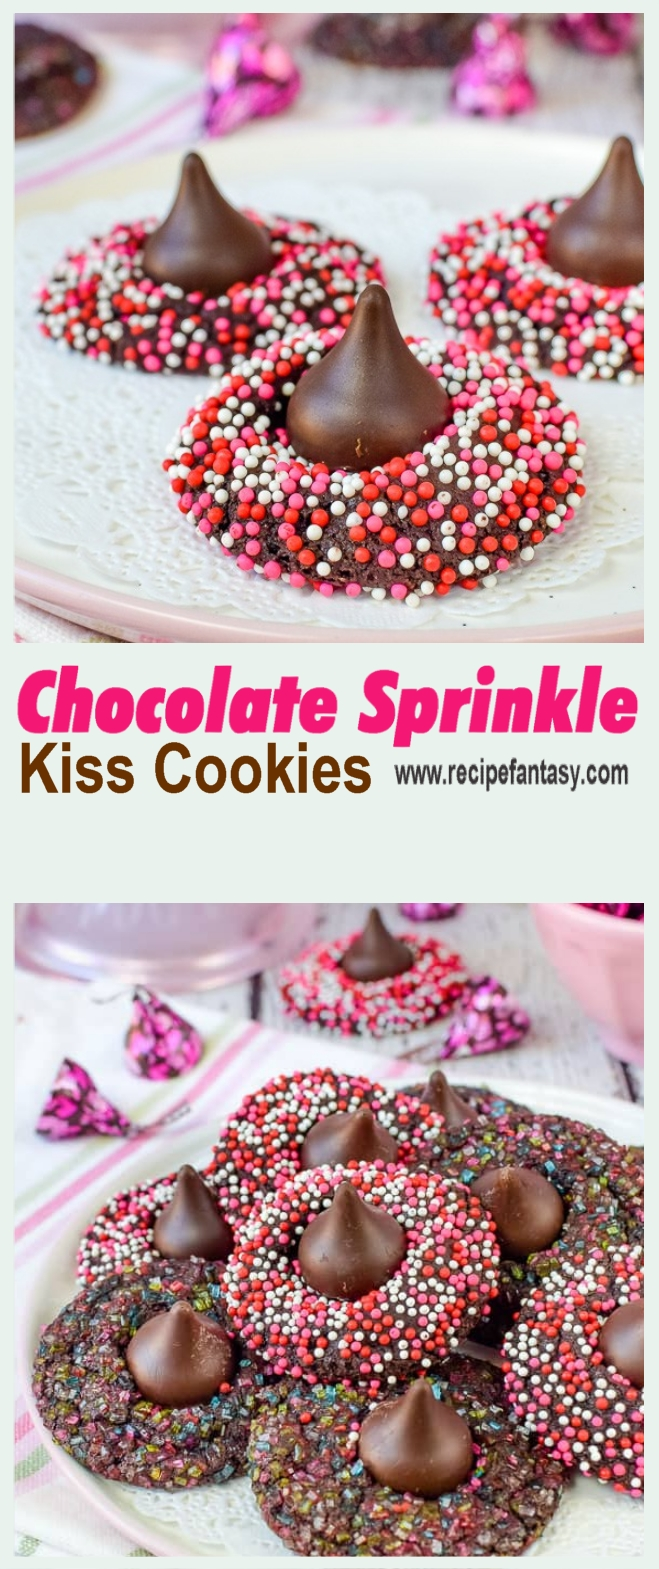 Chocolate Sprinkle Kiss Cookies